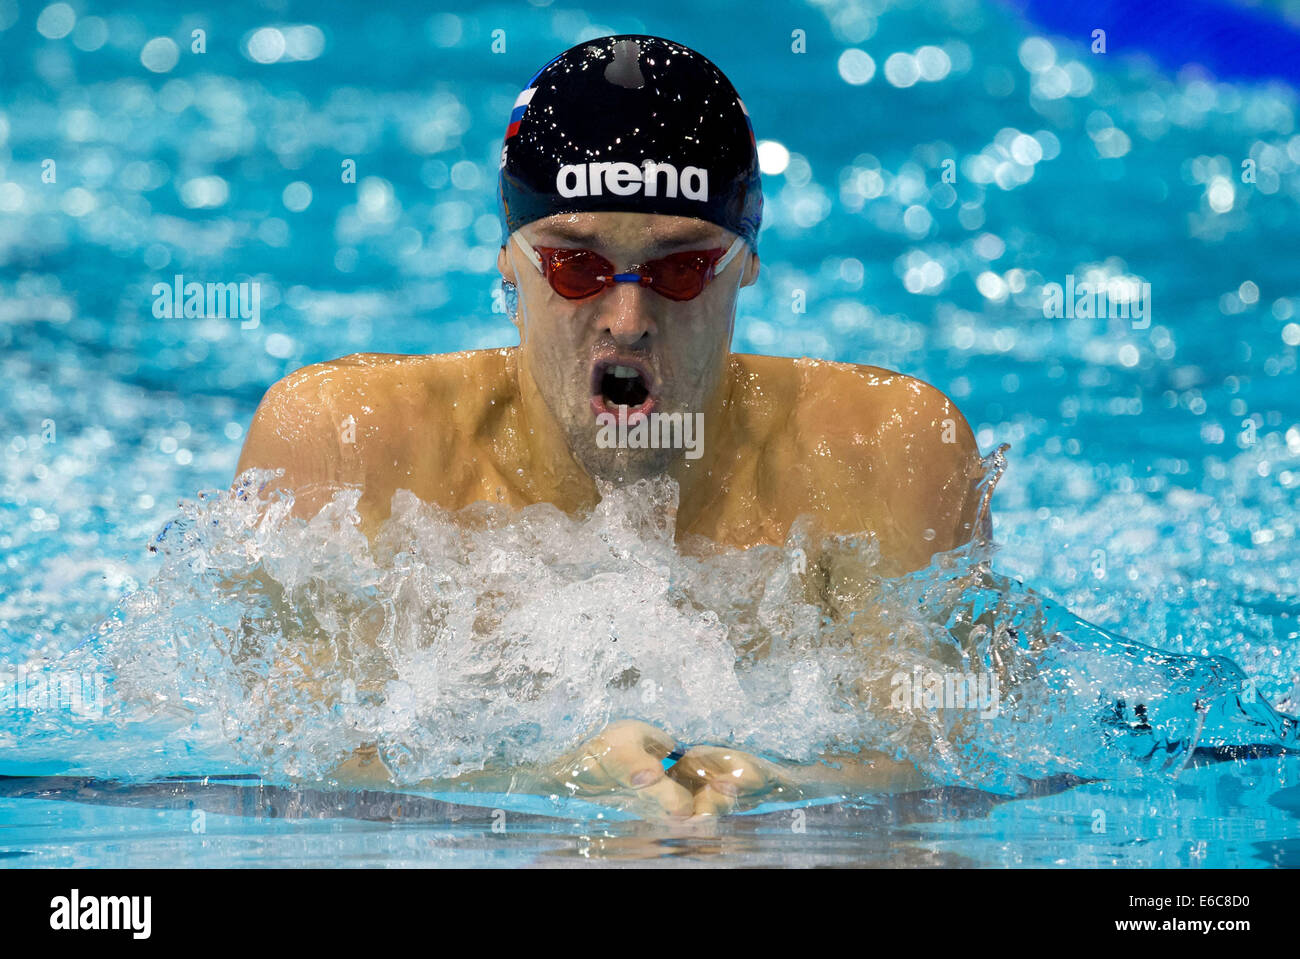 Berlin, Germany. 20th Aug, 2014. Grigory Falko from Russia competes in the mens 200m breaststroke preliminary at - Stock Image